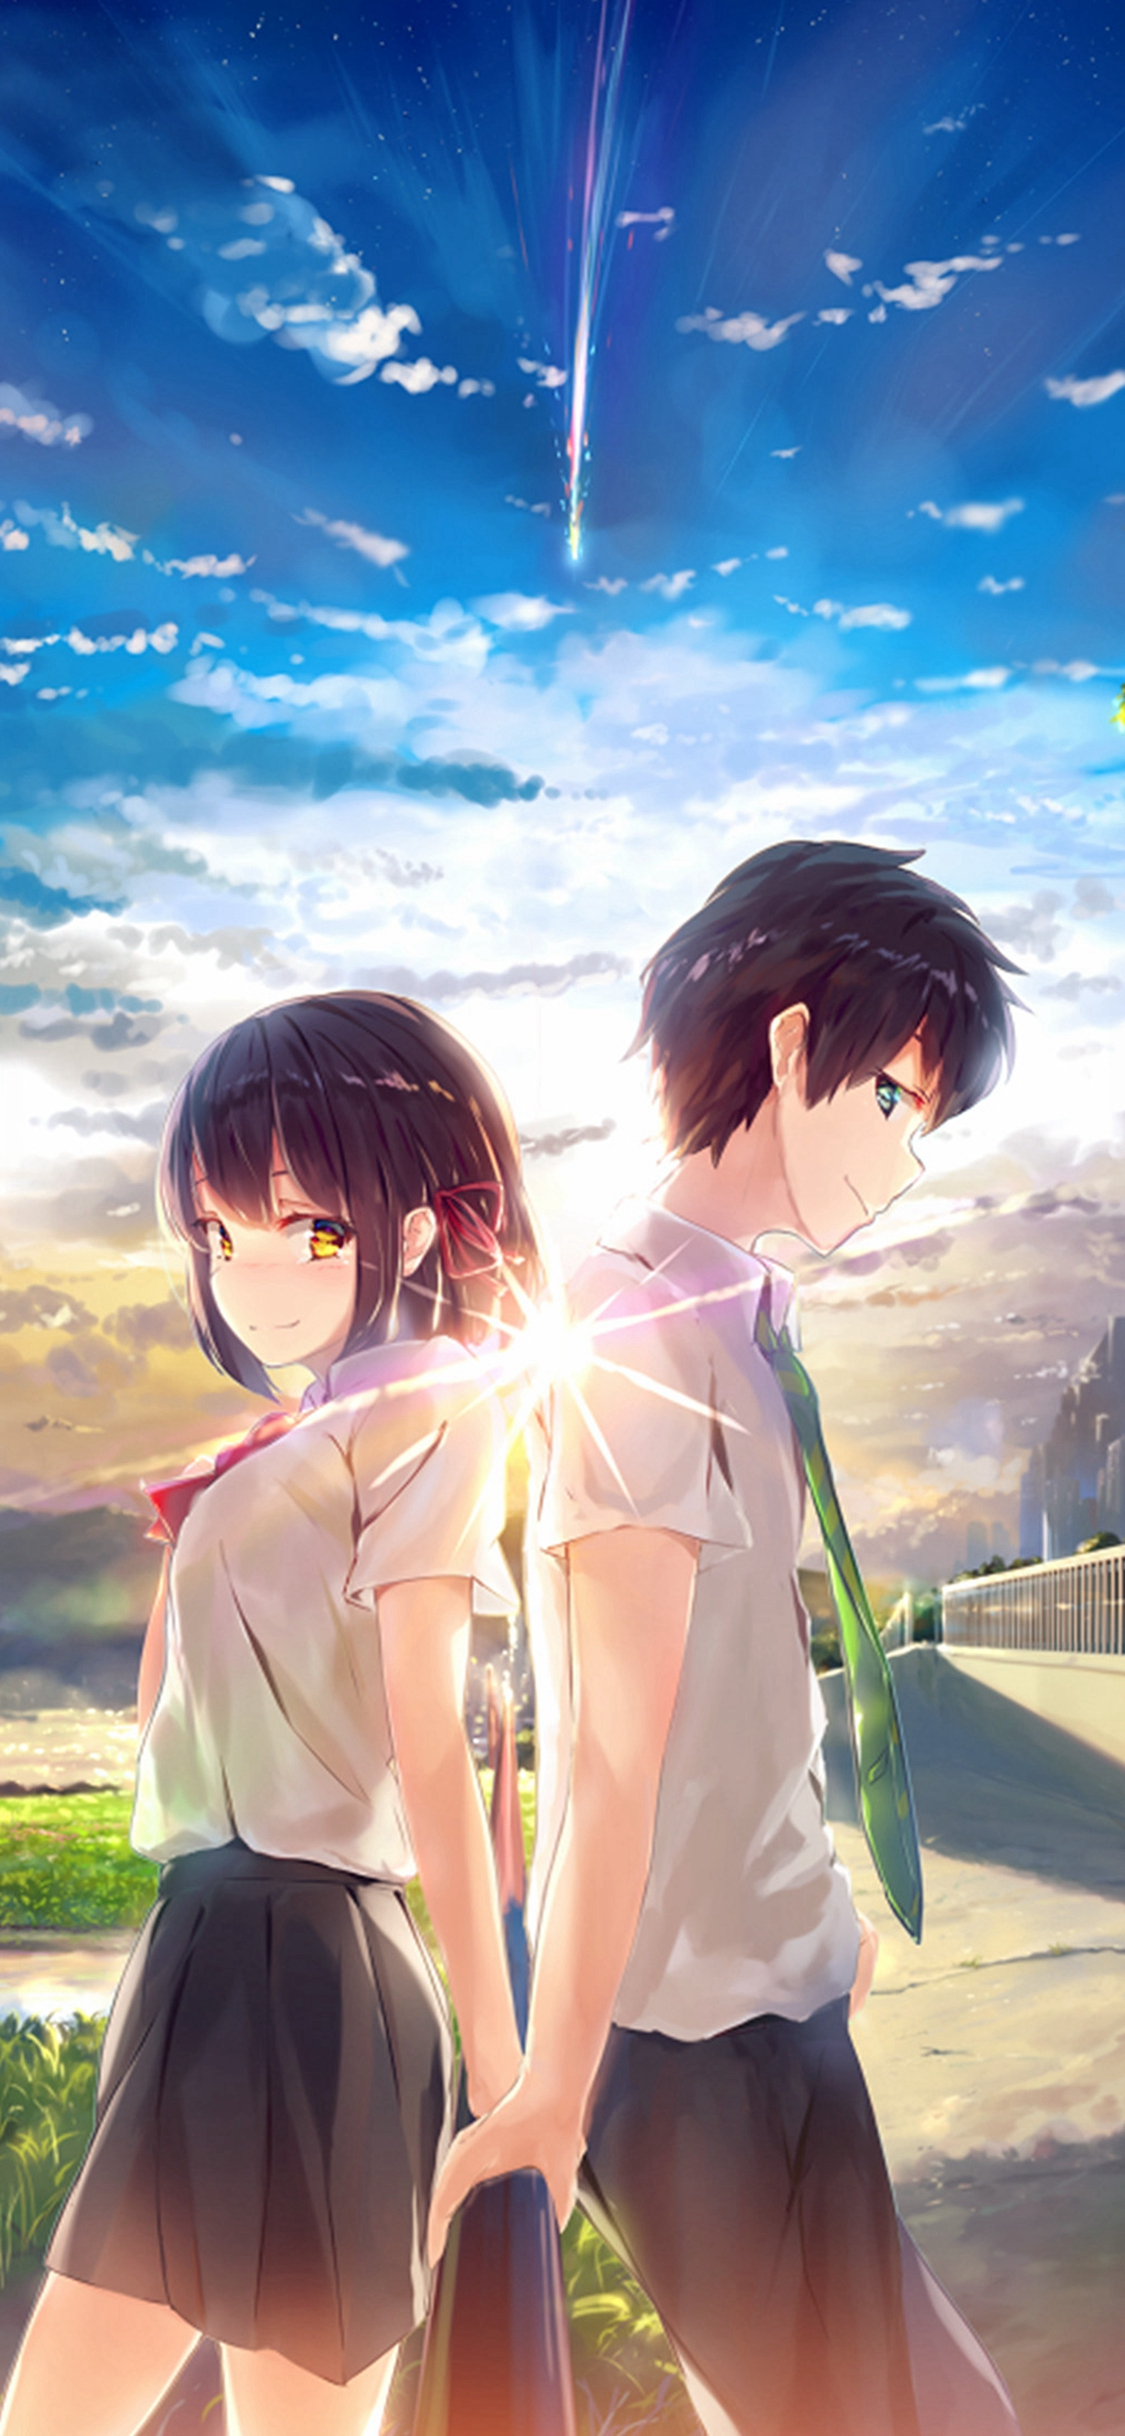 Cute Anime Couple Wallpaper For Iphone 1125x2436 Download Hd Wallpaper Wallpapertip